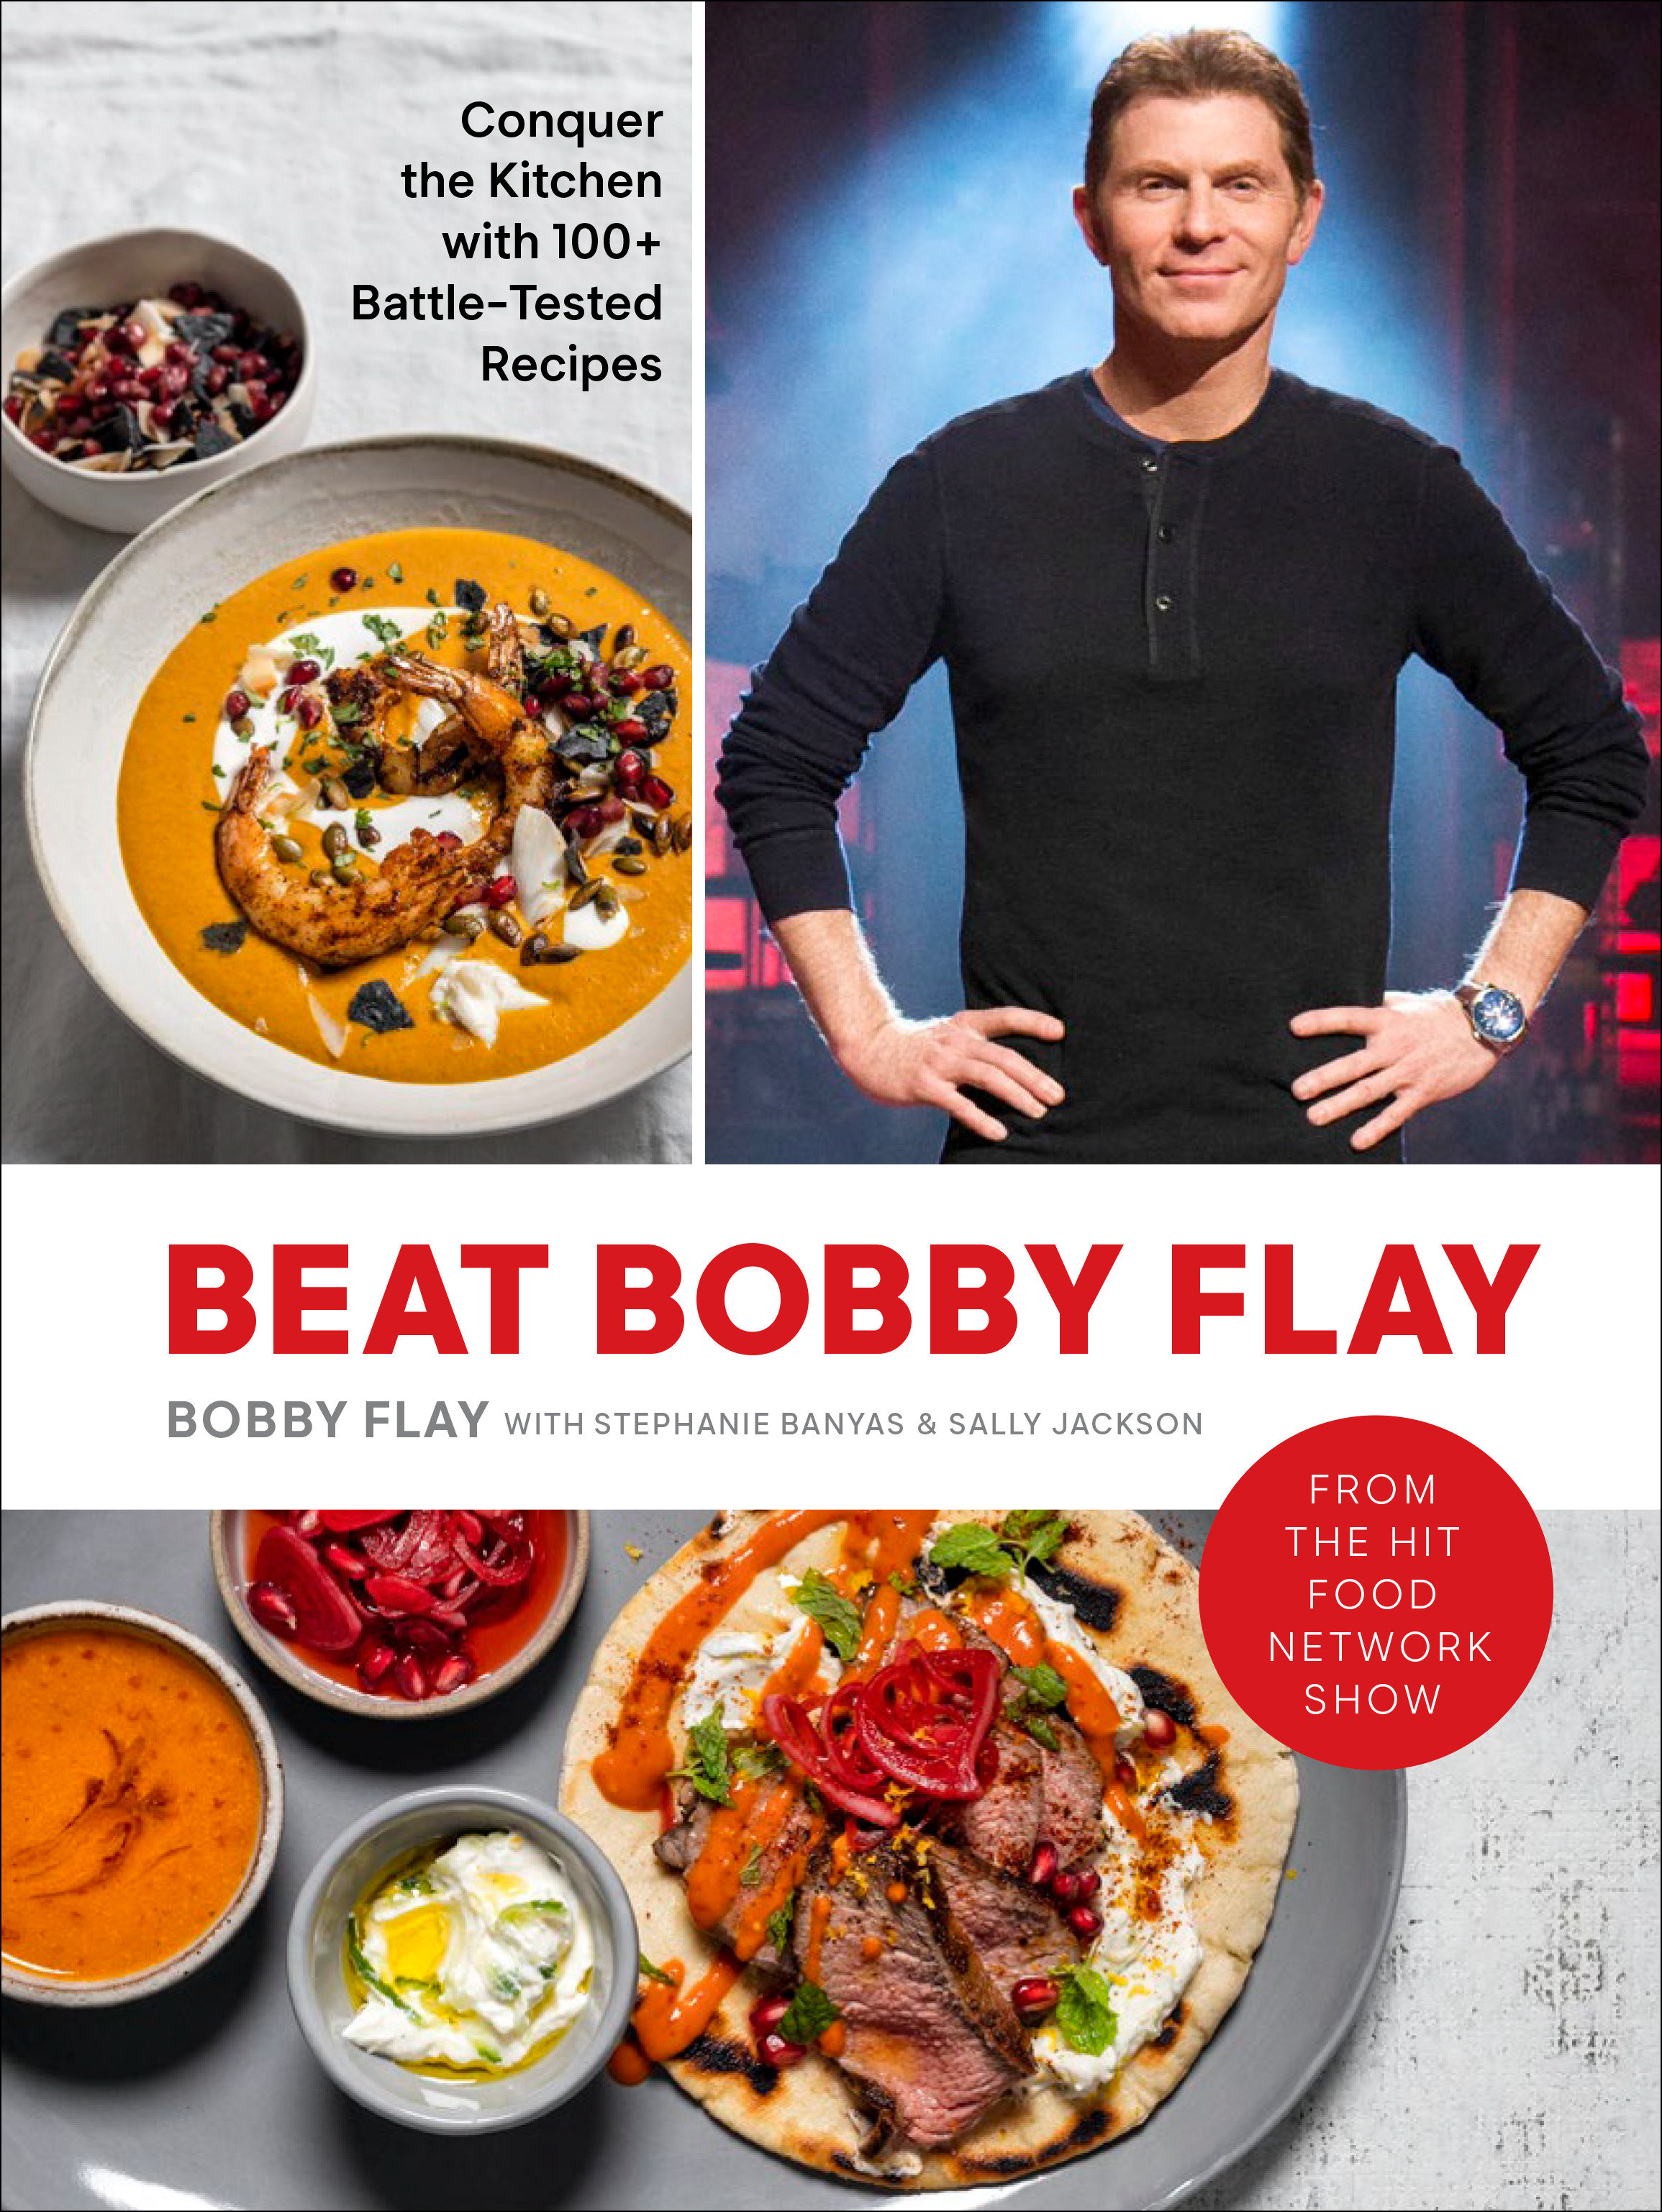 Beat Bobby Flay Conquer the Kitchen with 100+ Battle-Tested Recipes: A Cookbook